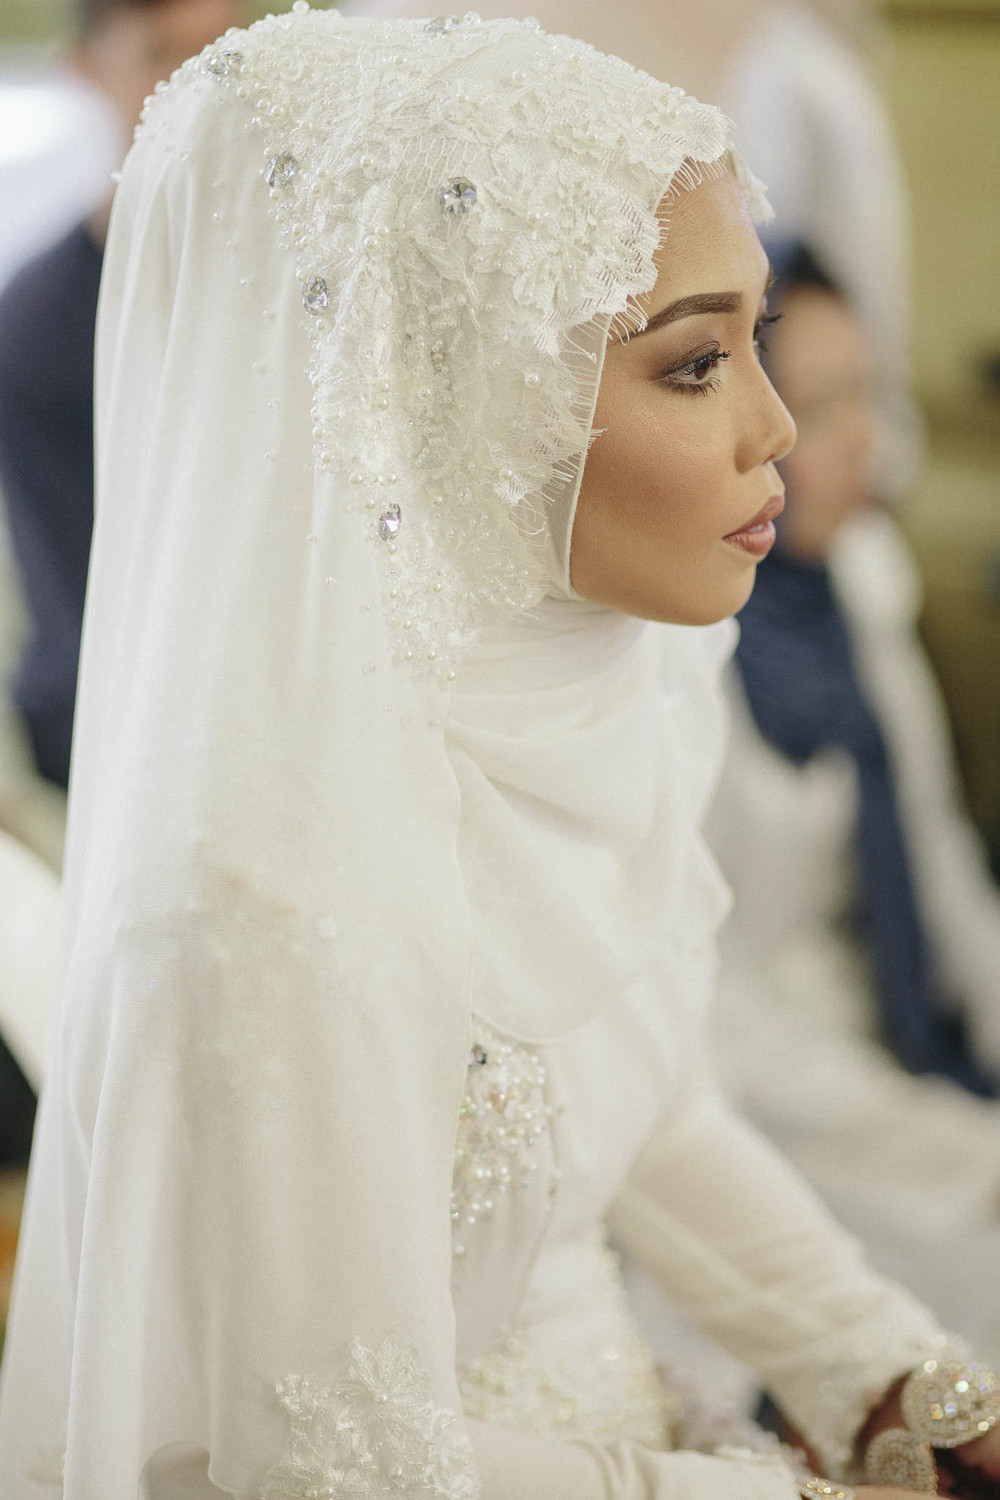 singapore-wedding-photographer-travel-khairul-atikah-11.jpg